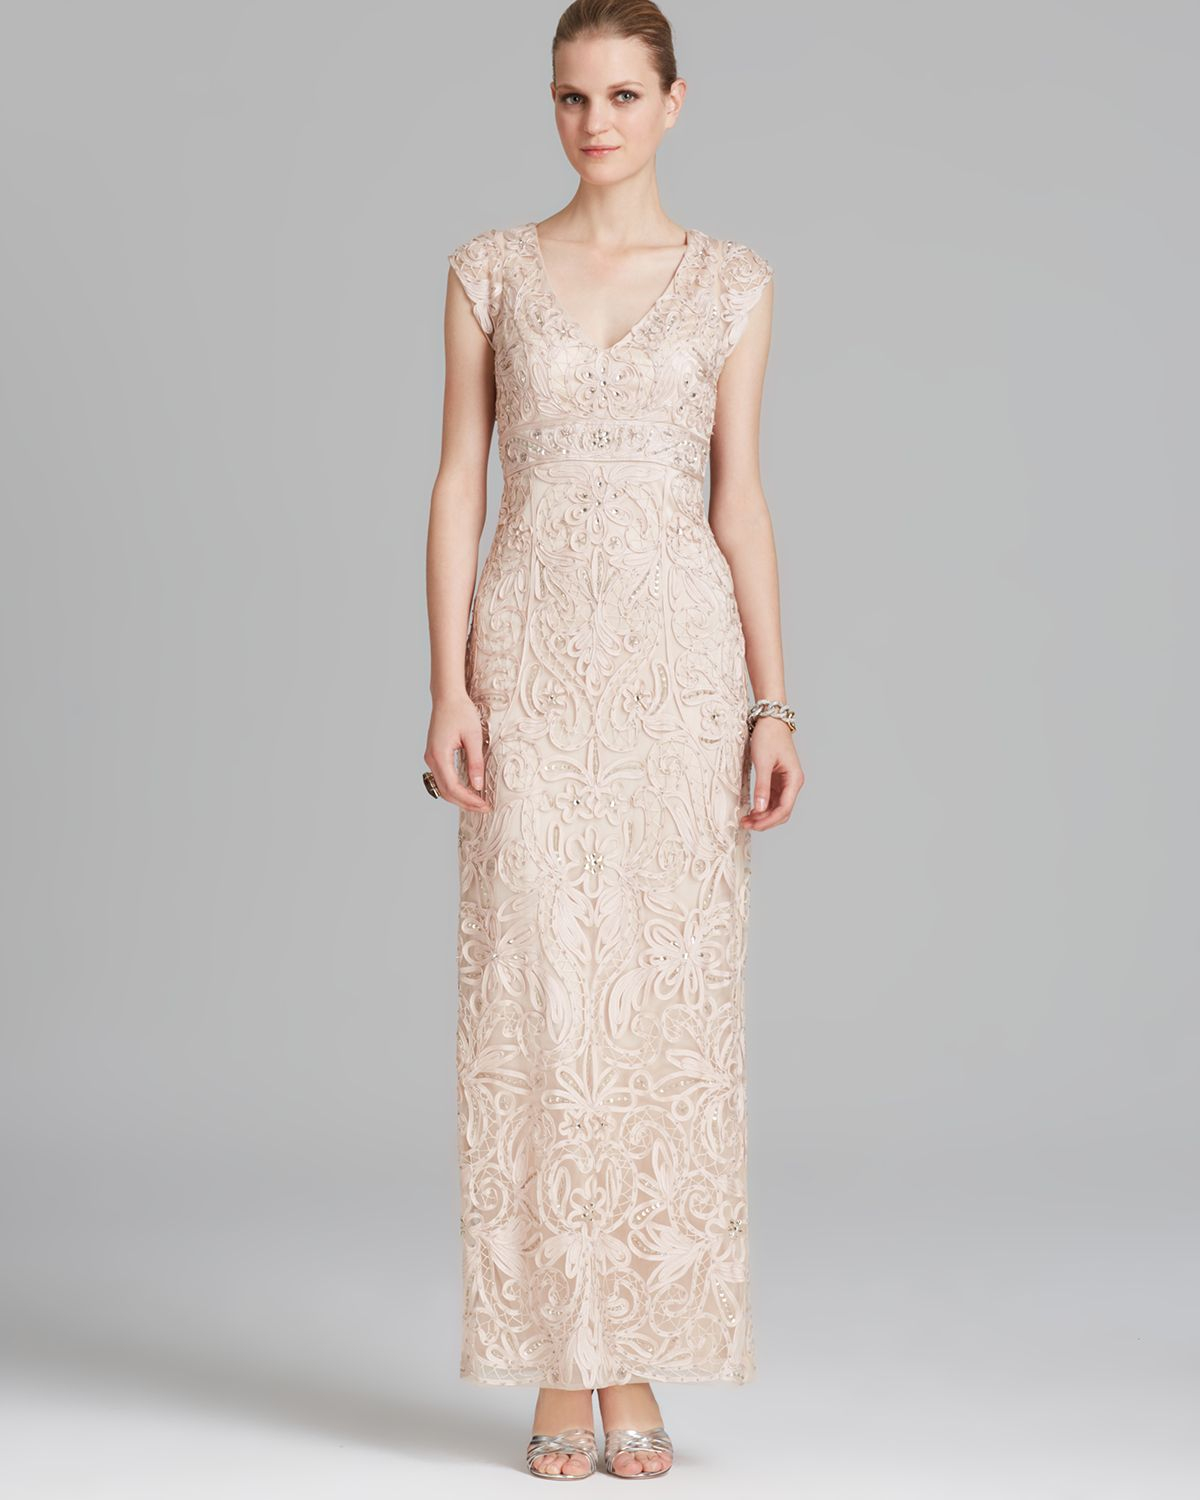 Lyst - Sue Wong Gown Cap Sleeve Soutache in Natural